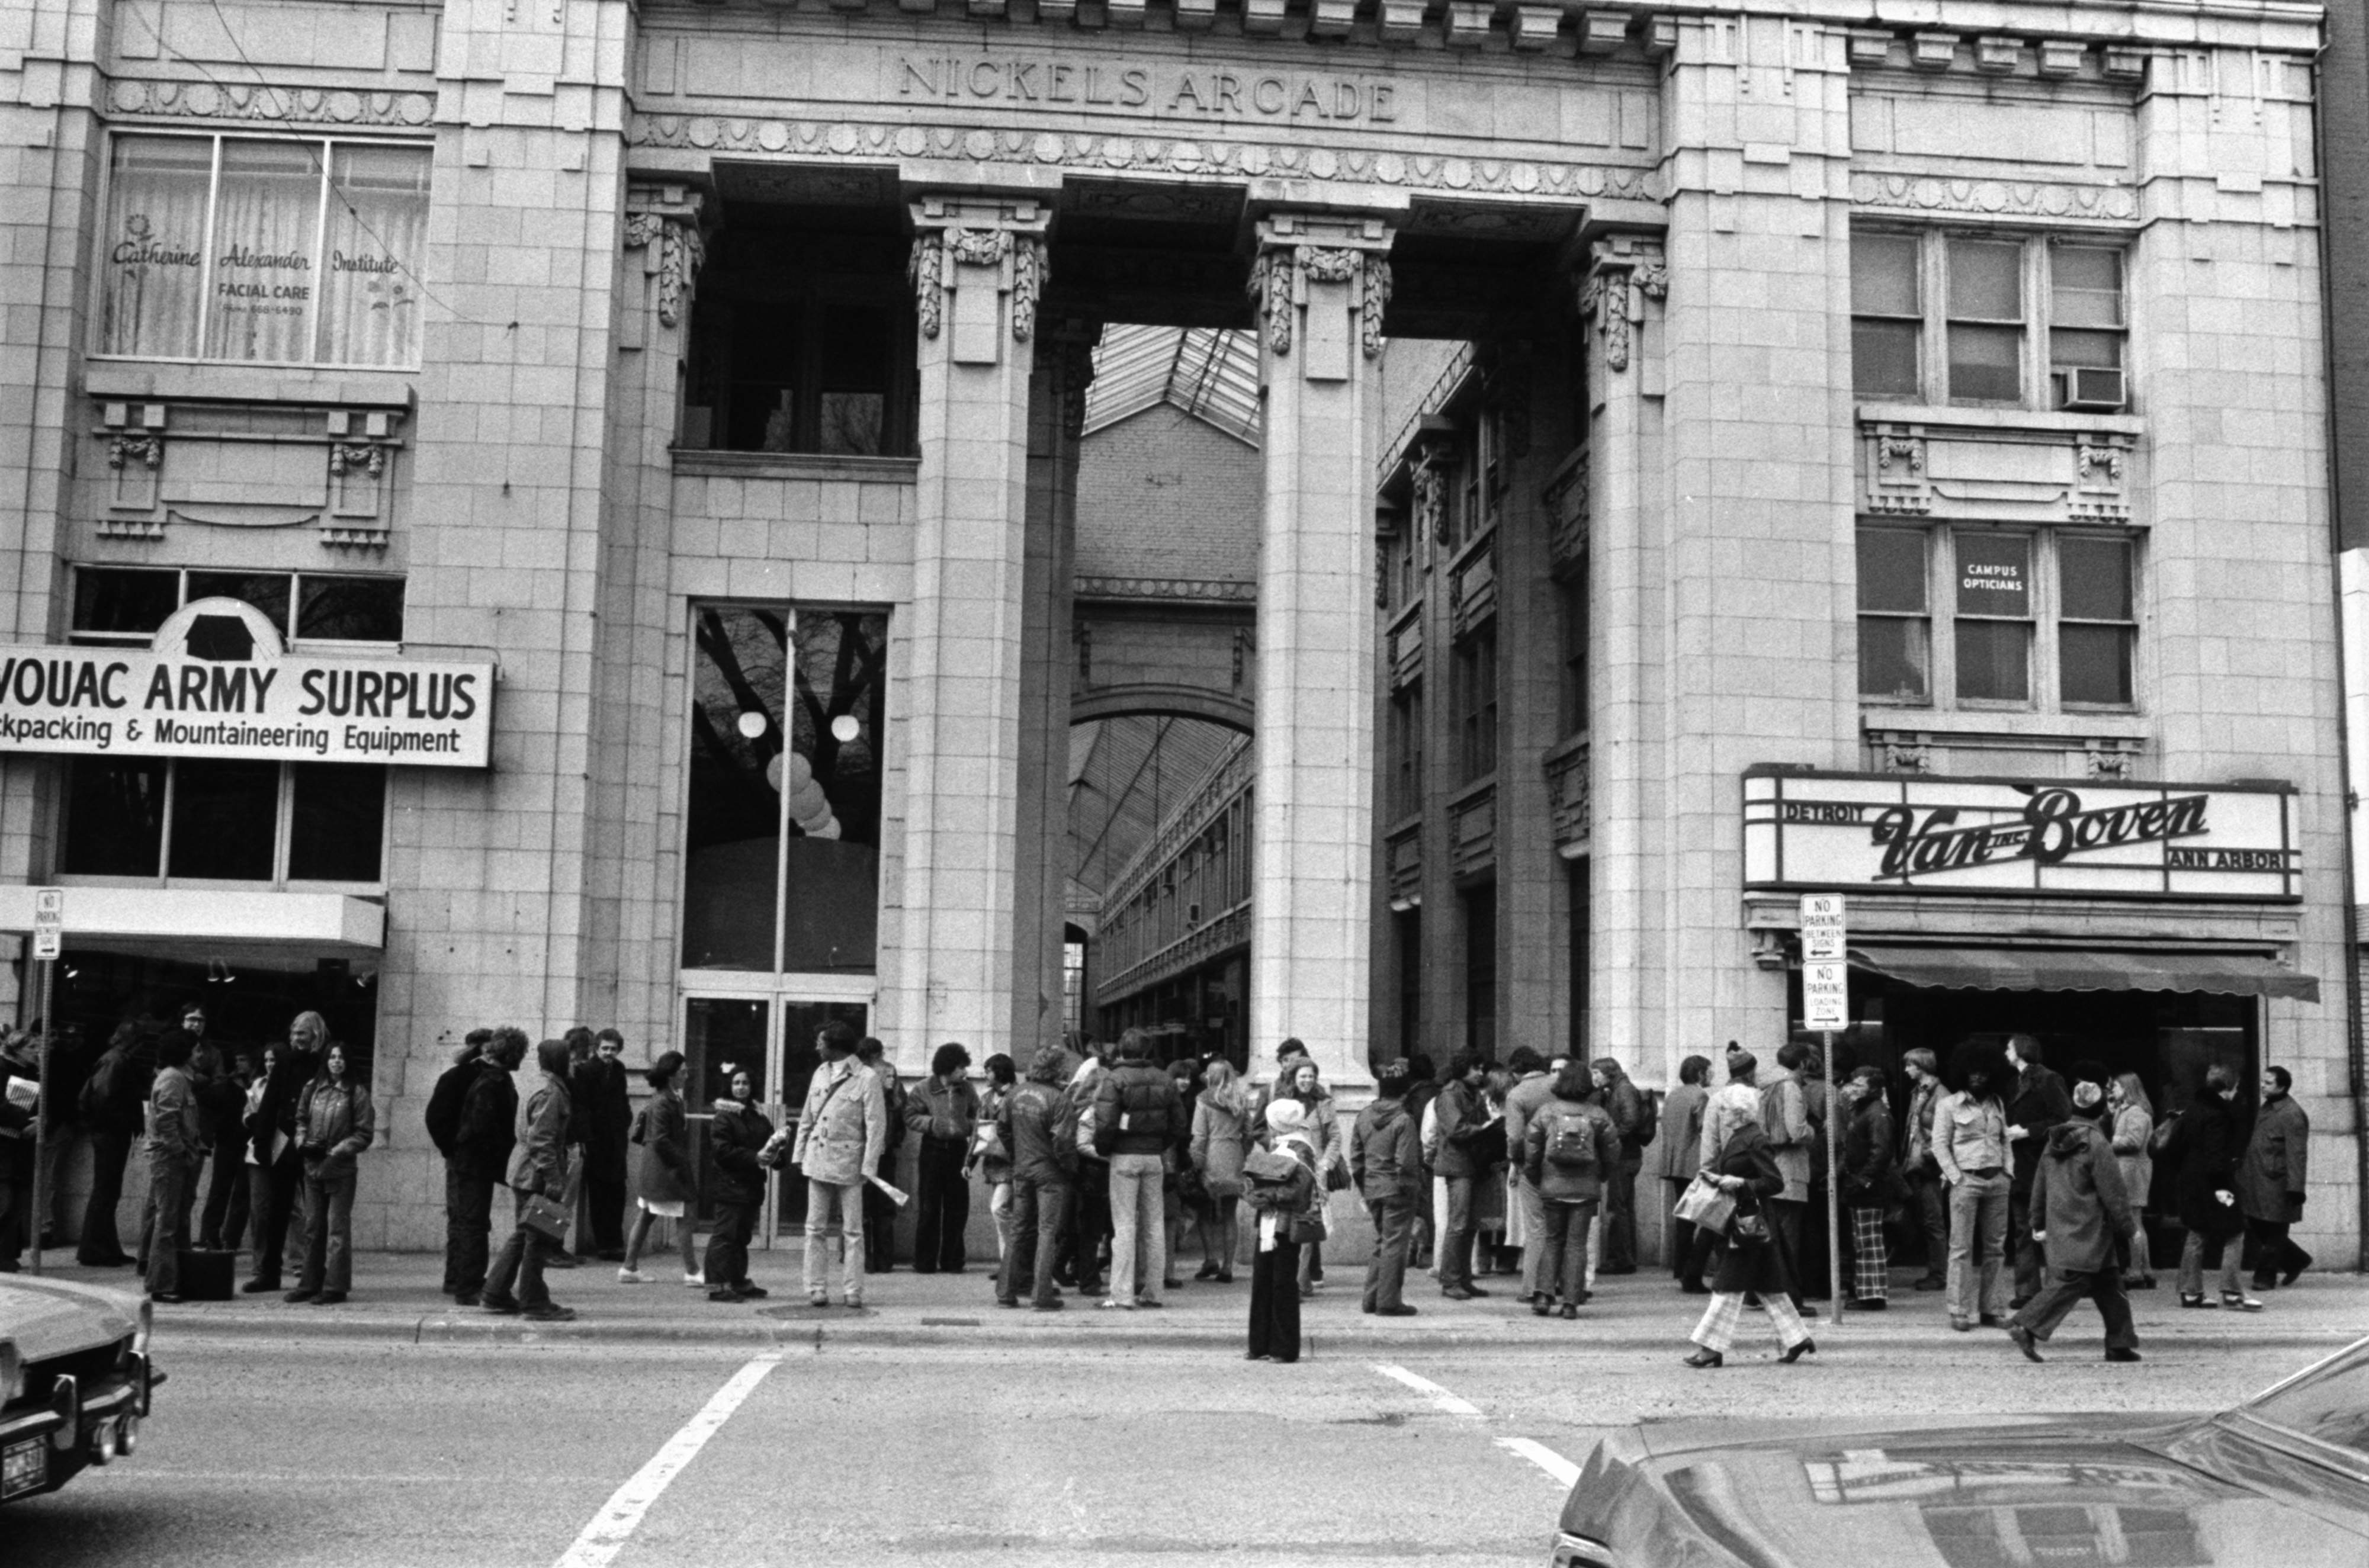 Streakers on the U-M campus attract a crowd in front of Nickels Arcade, March 1974 image